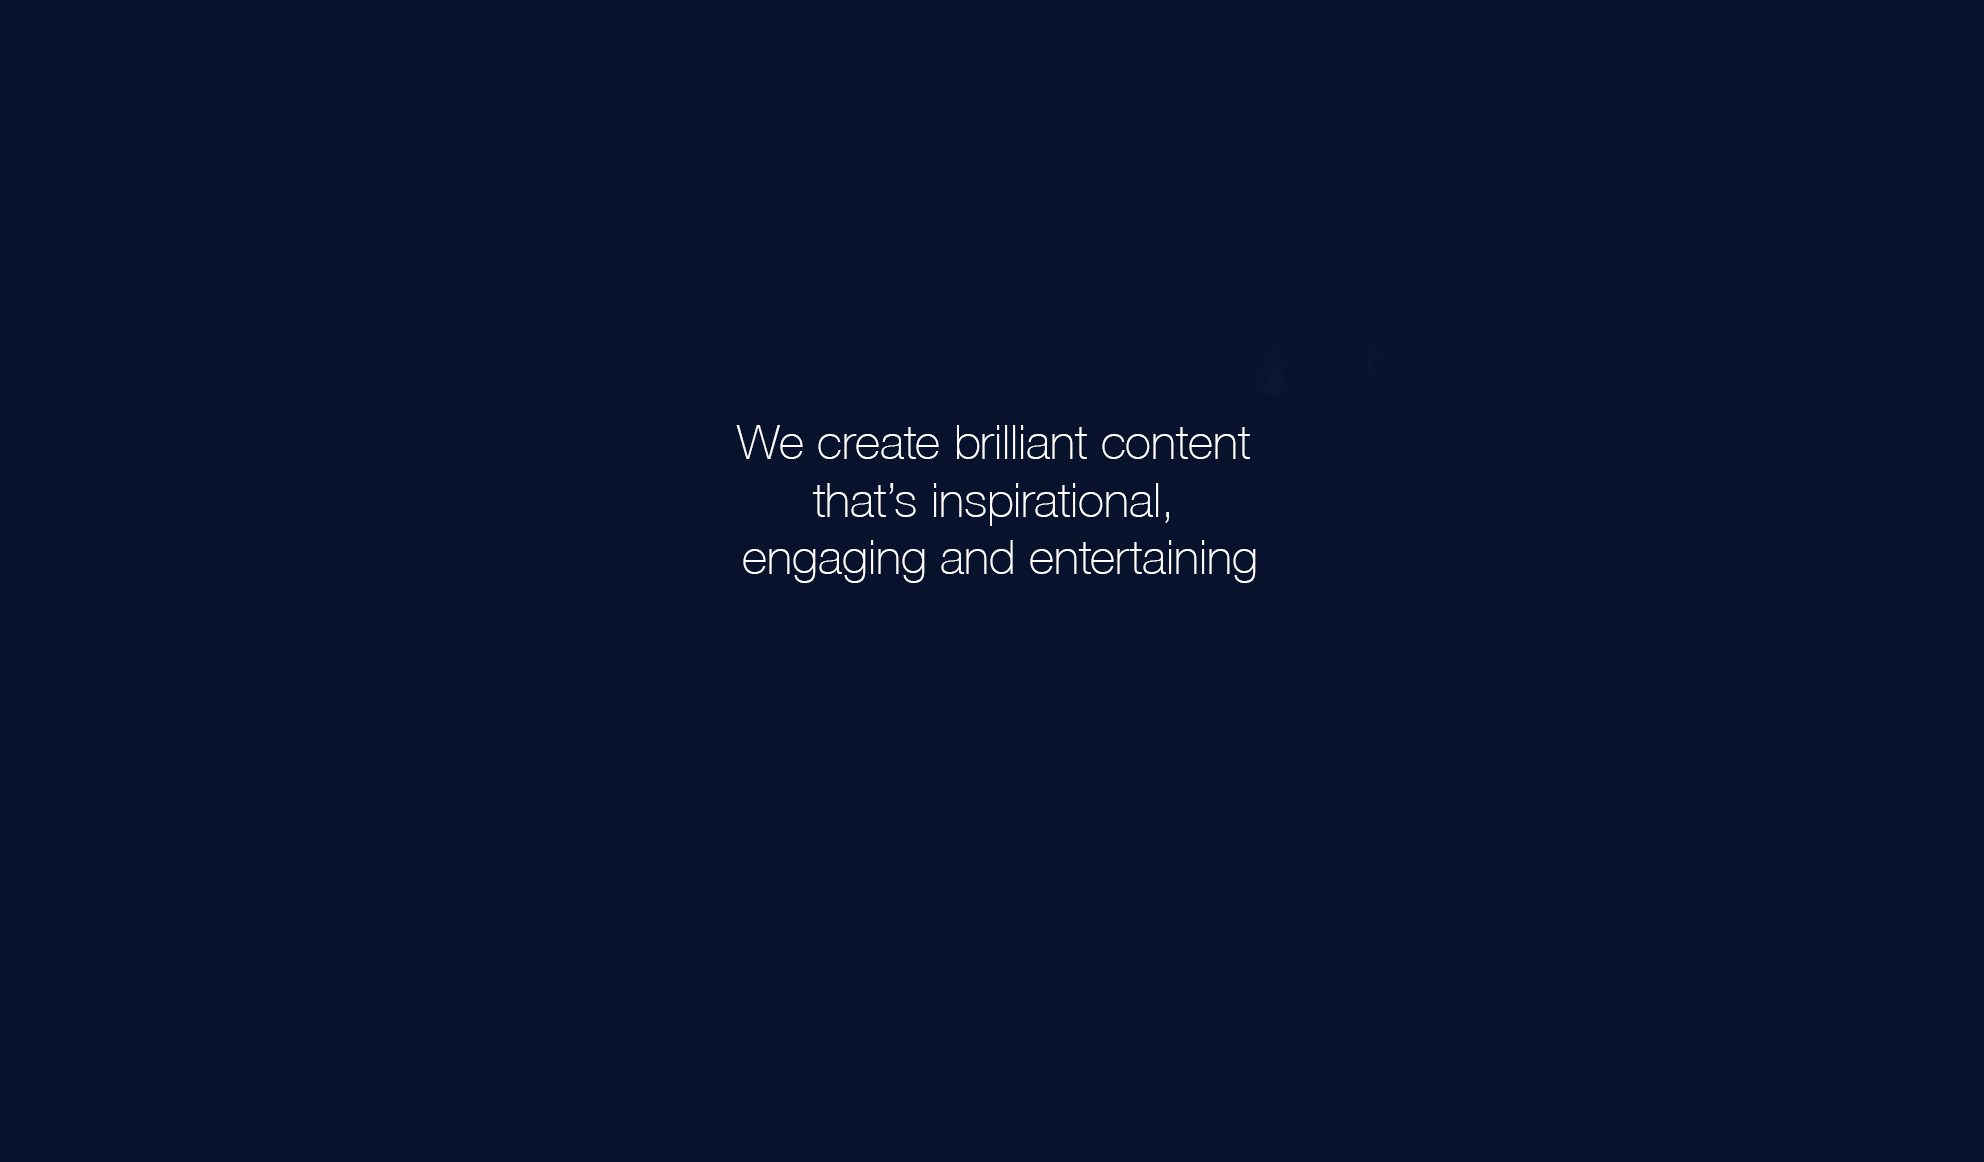 We create brilliant content